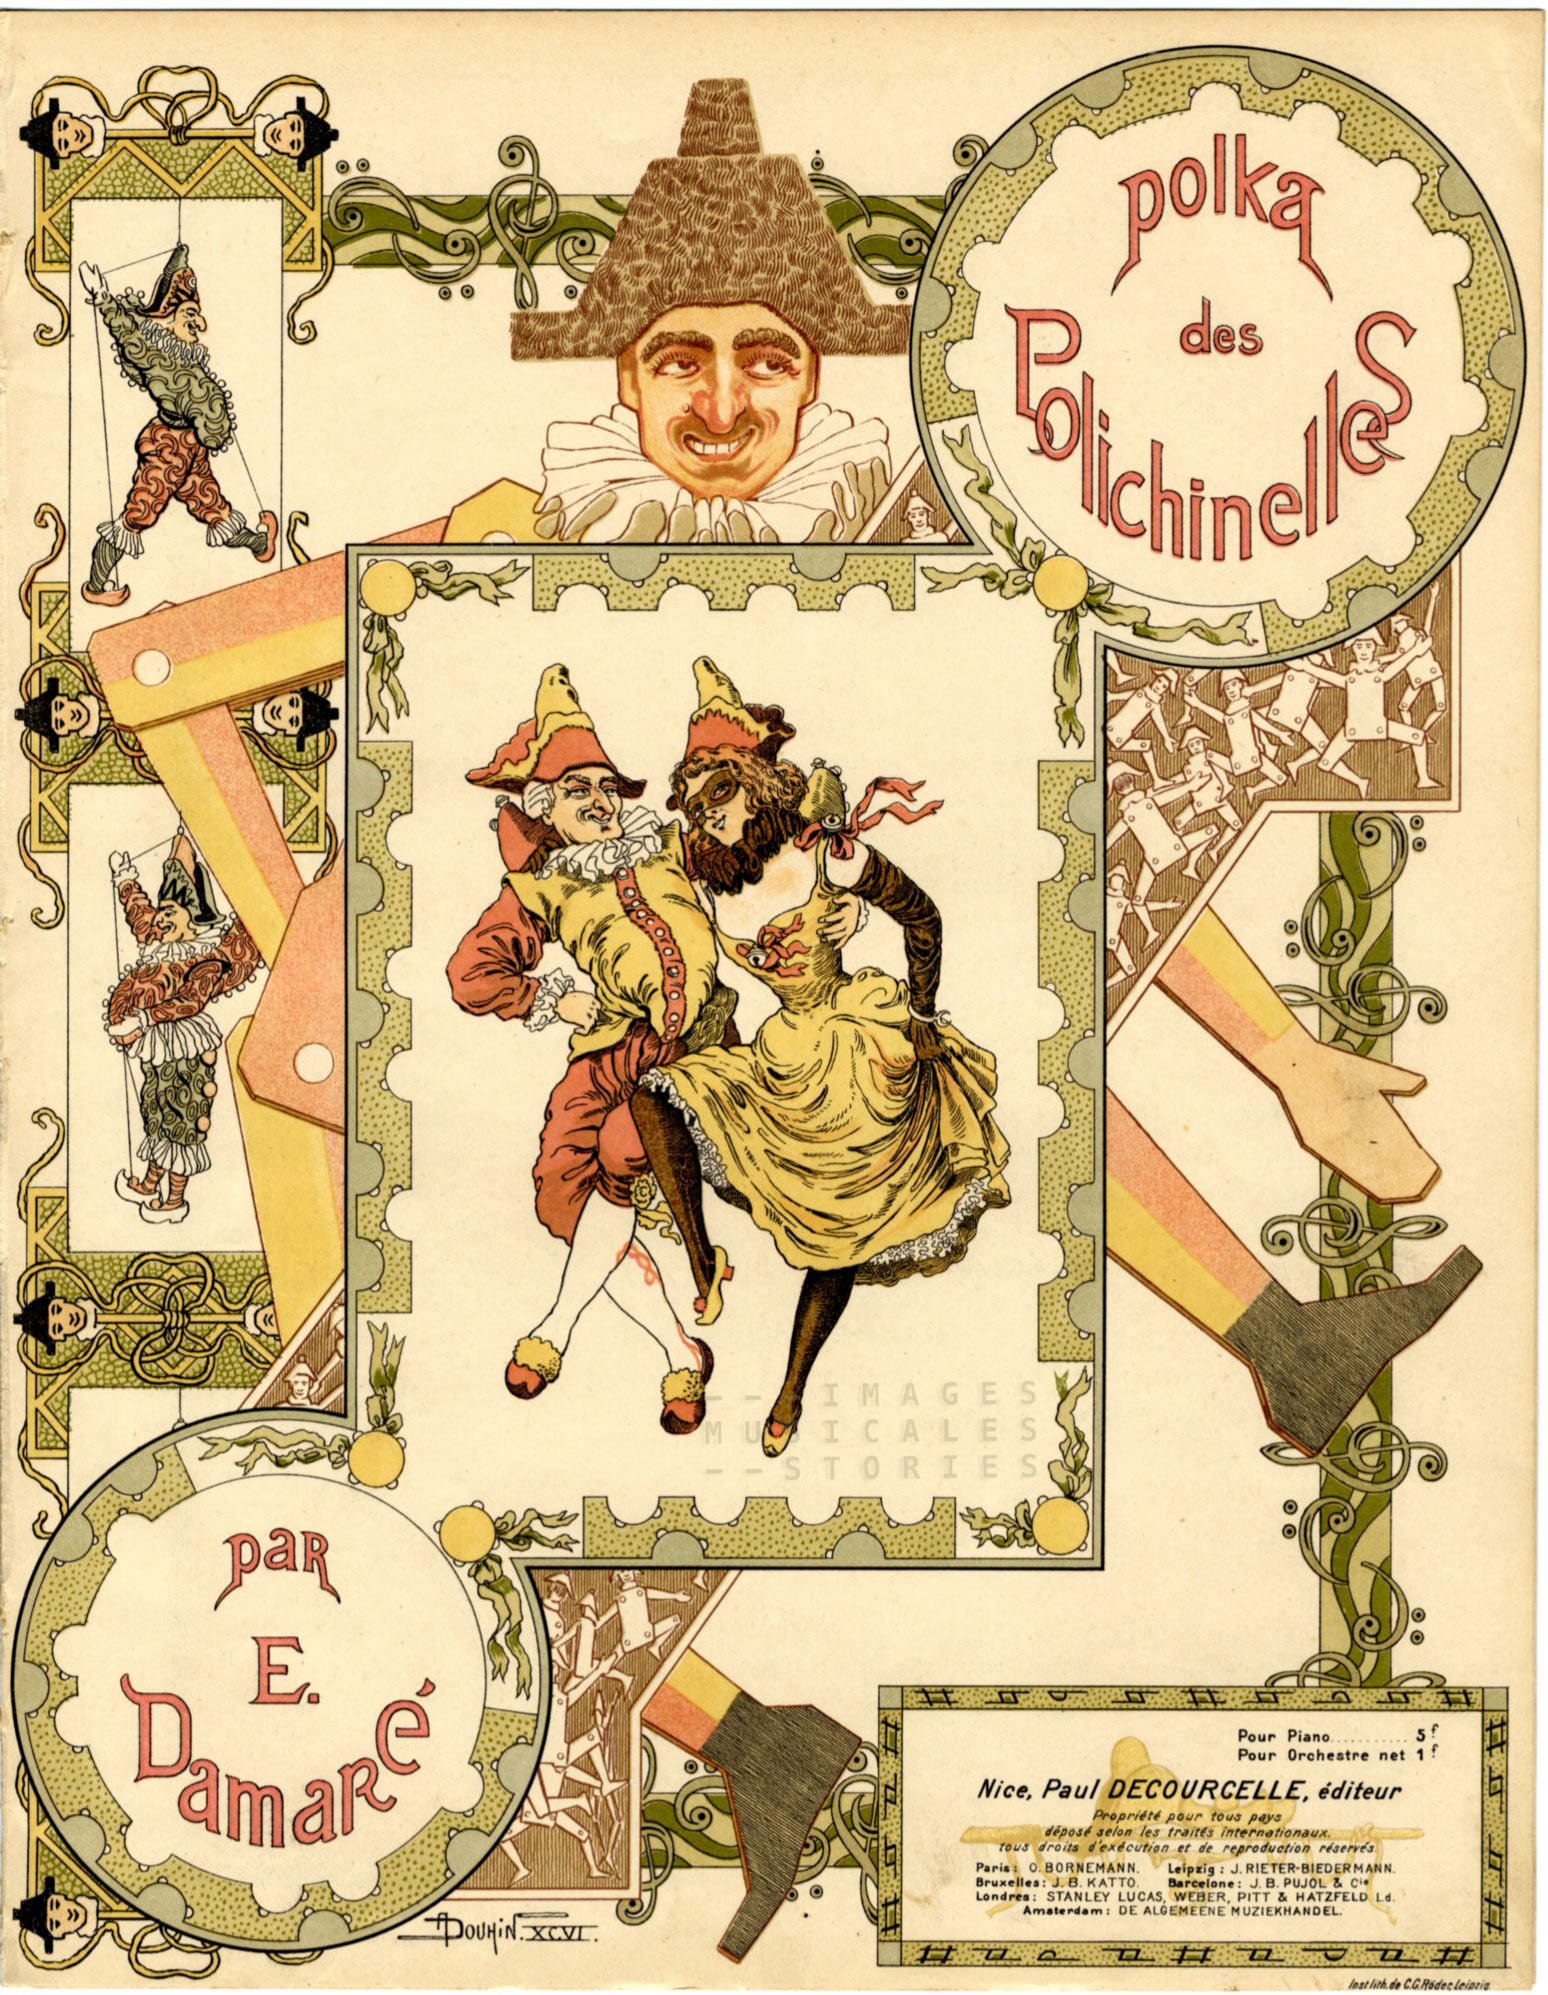 cover illustration by Douhin for 'Polka des Polichinelles' (1906)